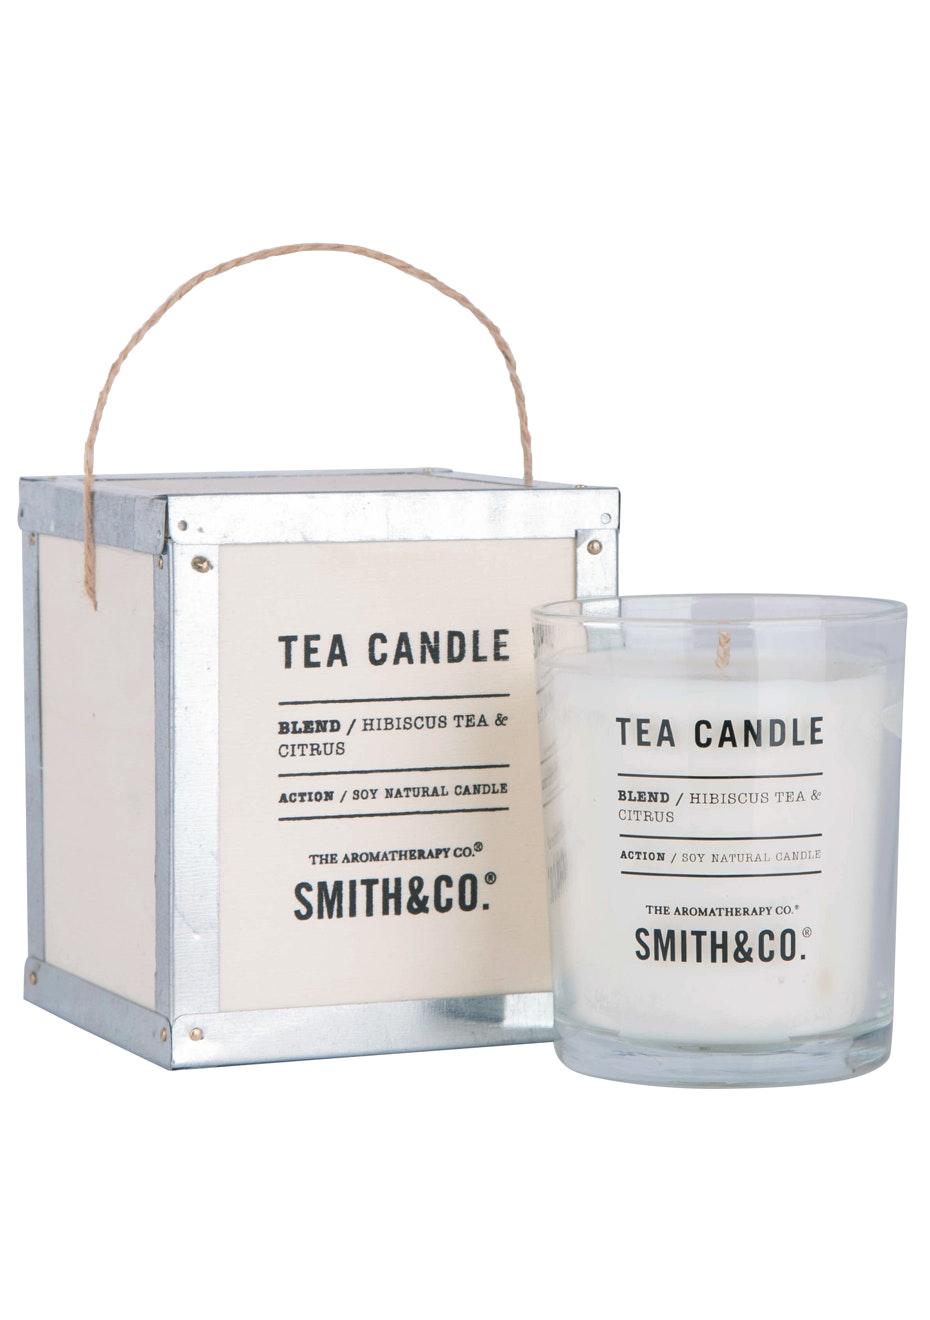 The Aromatherapy Co. Tea Chest Candle  - Hibiscus Tea & Citrus